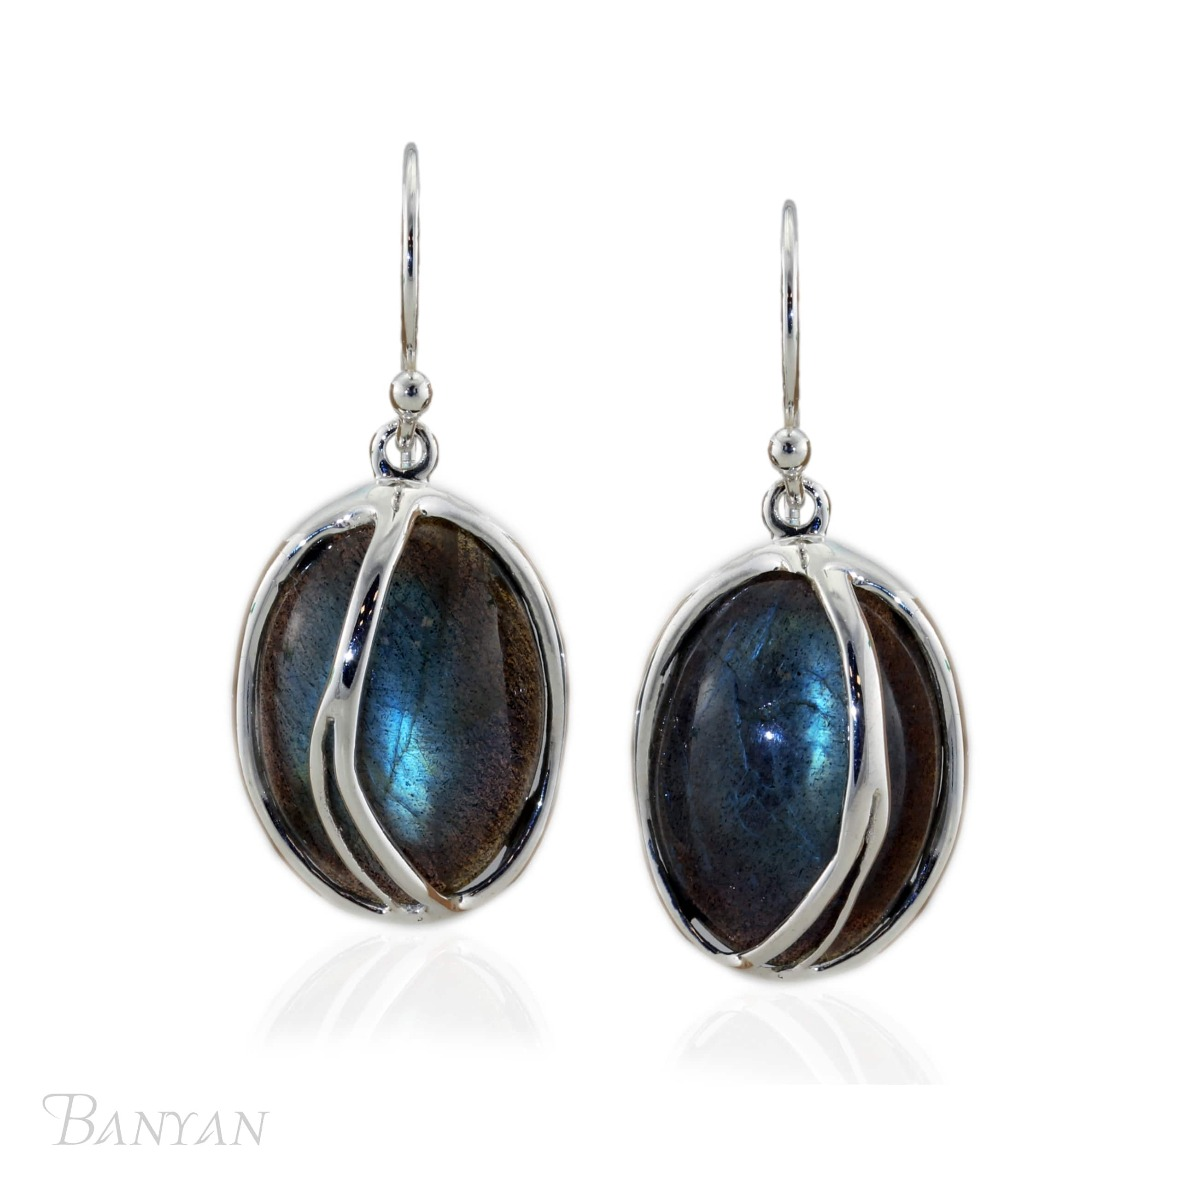 Silver Hand-Crafted Labradorite Earrings